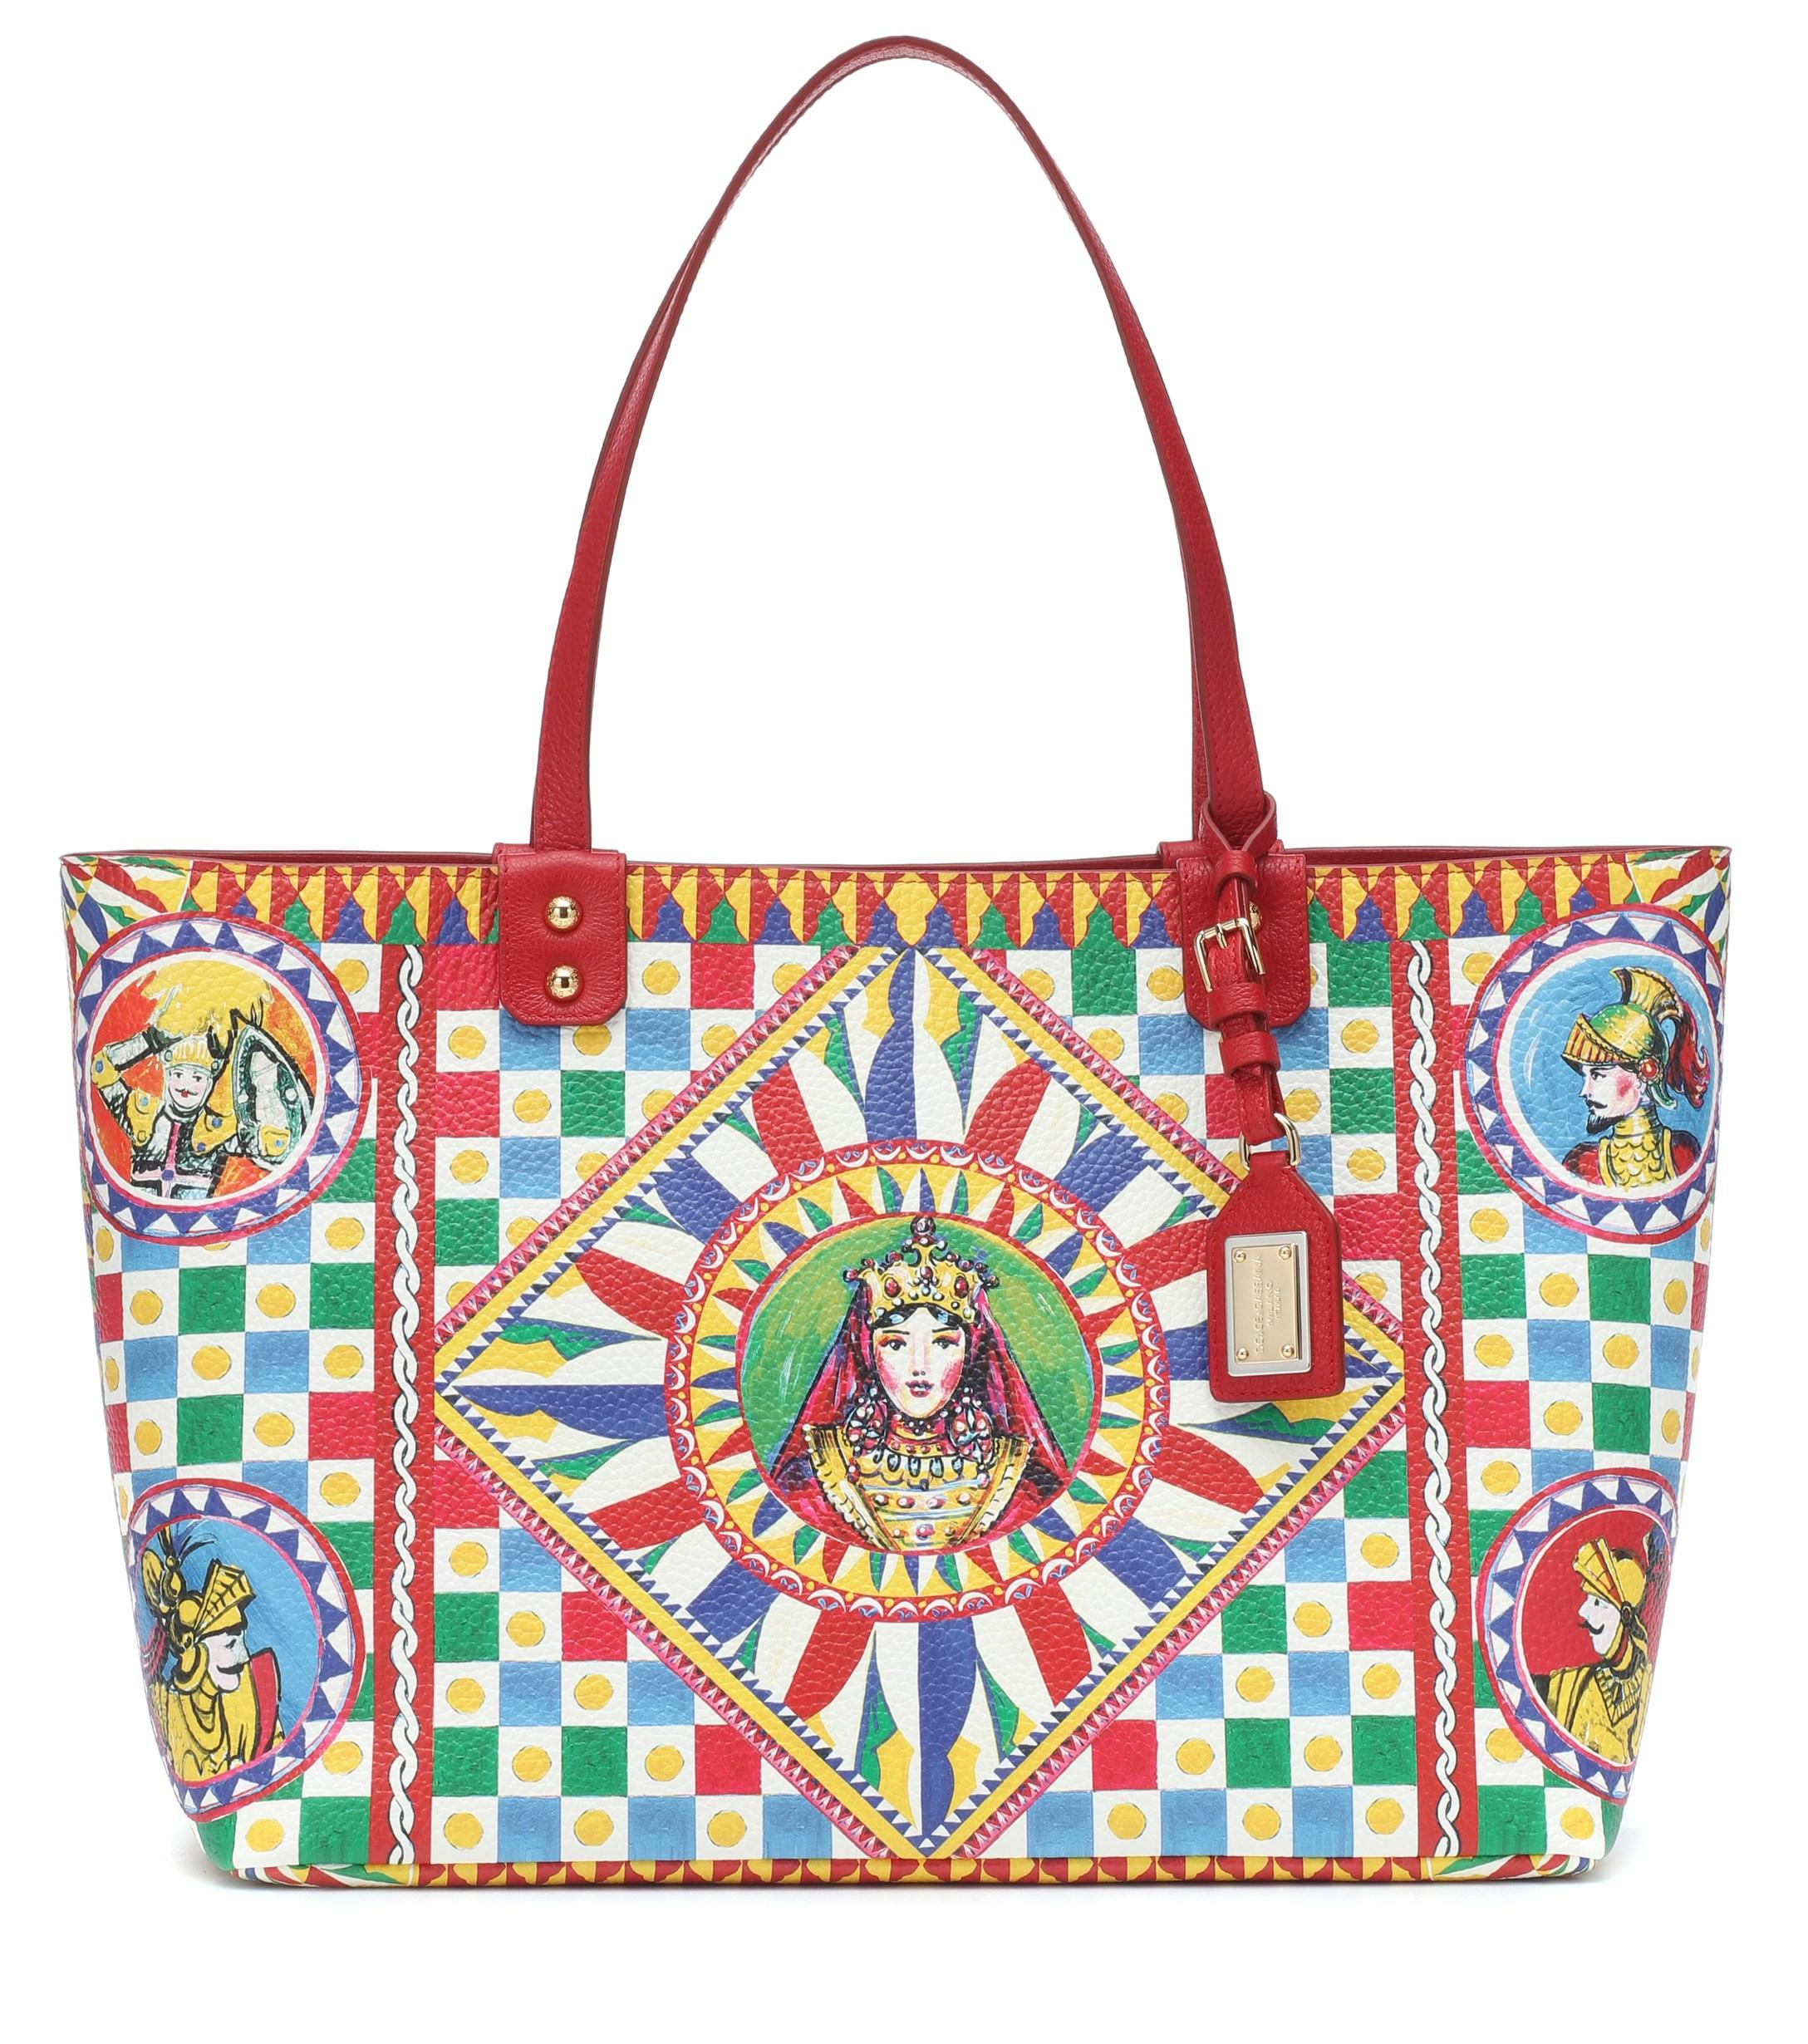 Lyst - Dolce   Gabbana Beatrice Printed Leather Tote in Red 9e669b9a49